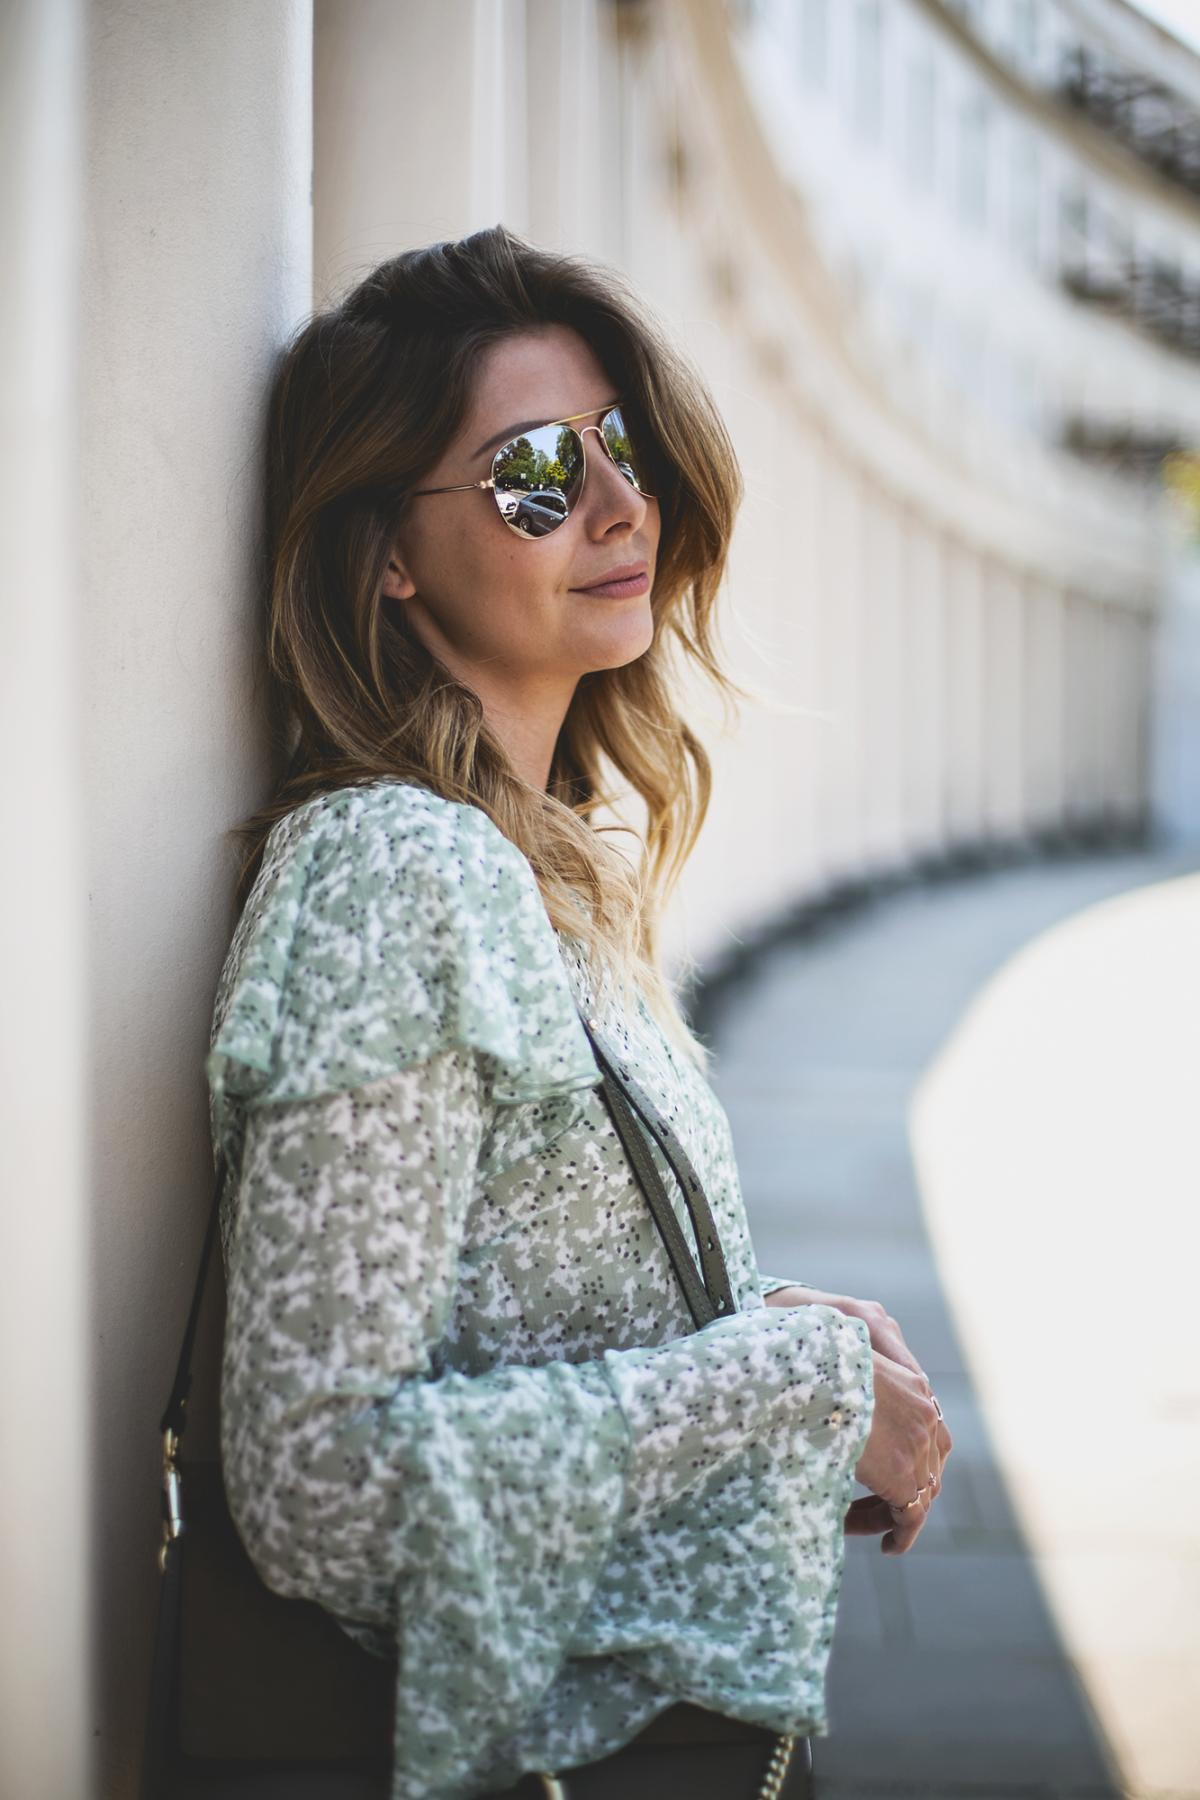 Green floaty top, khaki chloe faye bag, aviator sunglasses